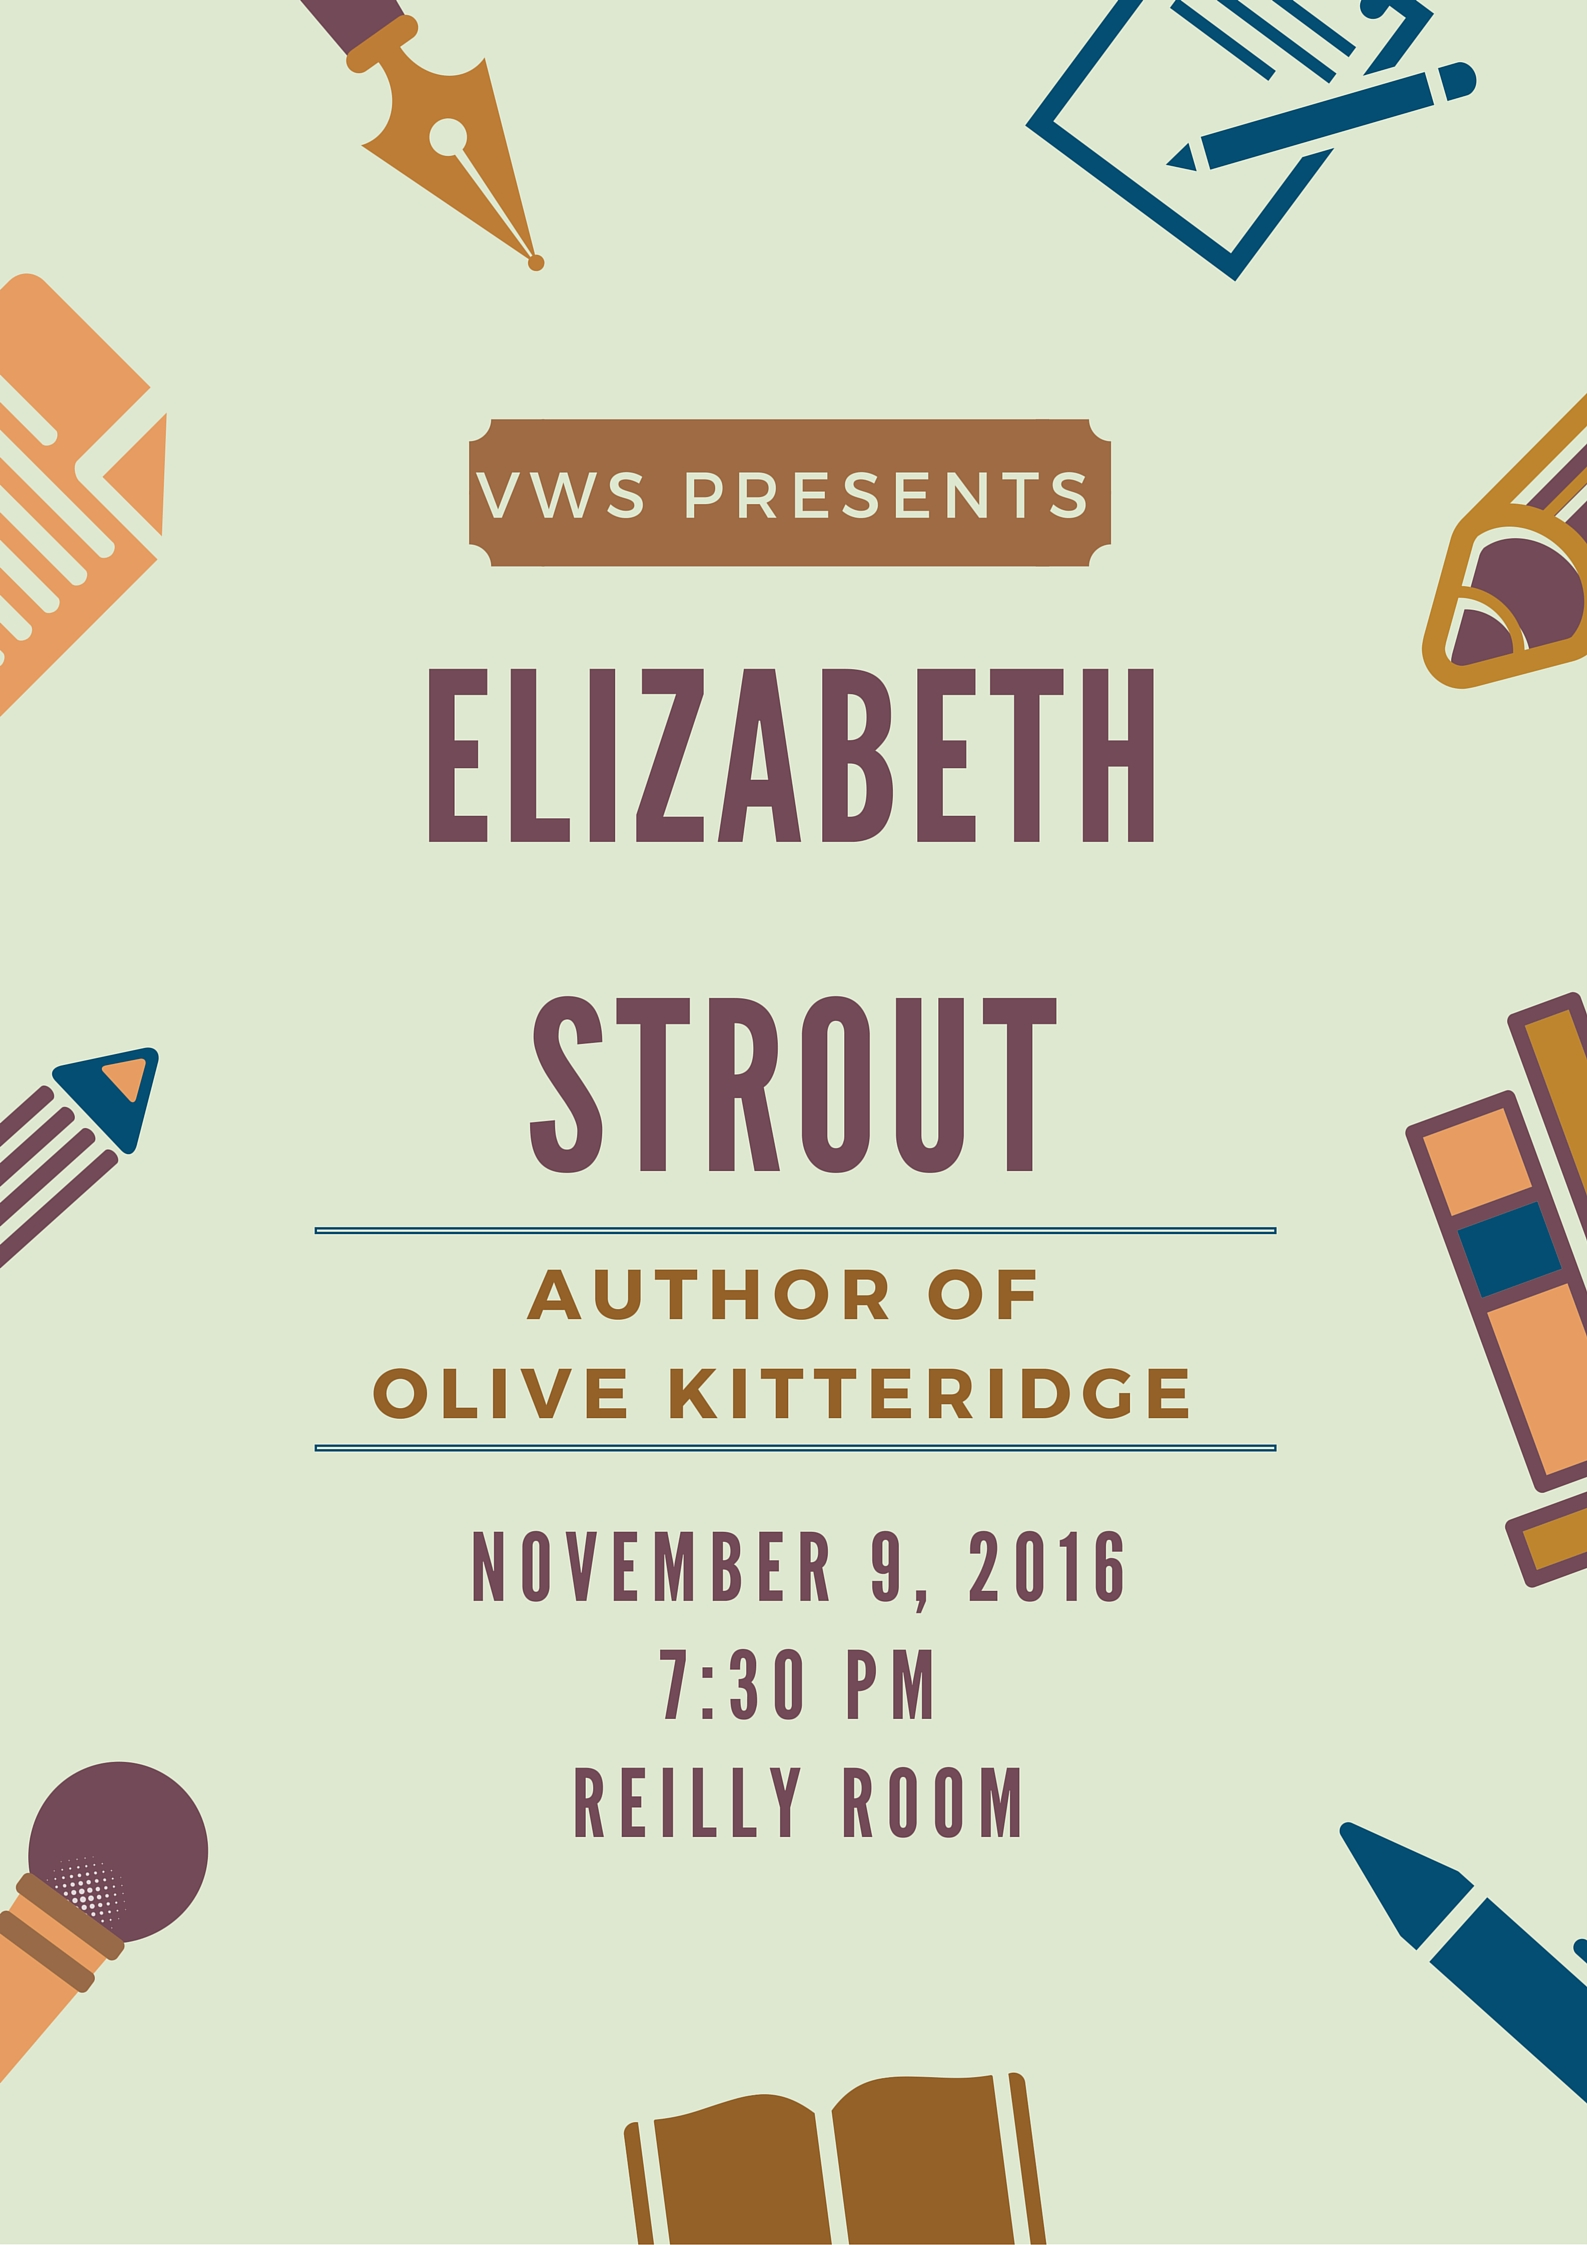 Elizabeth Strout, author of Olive Kitteridge, will be in the Reilly Room on November 9, 2016, at 7:30pm.